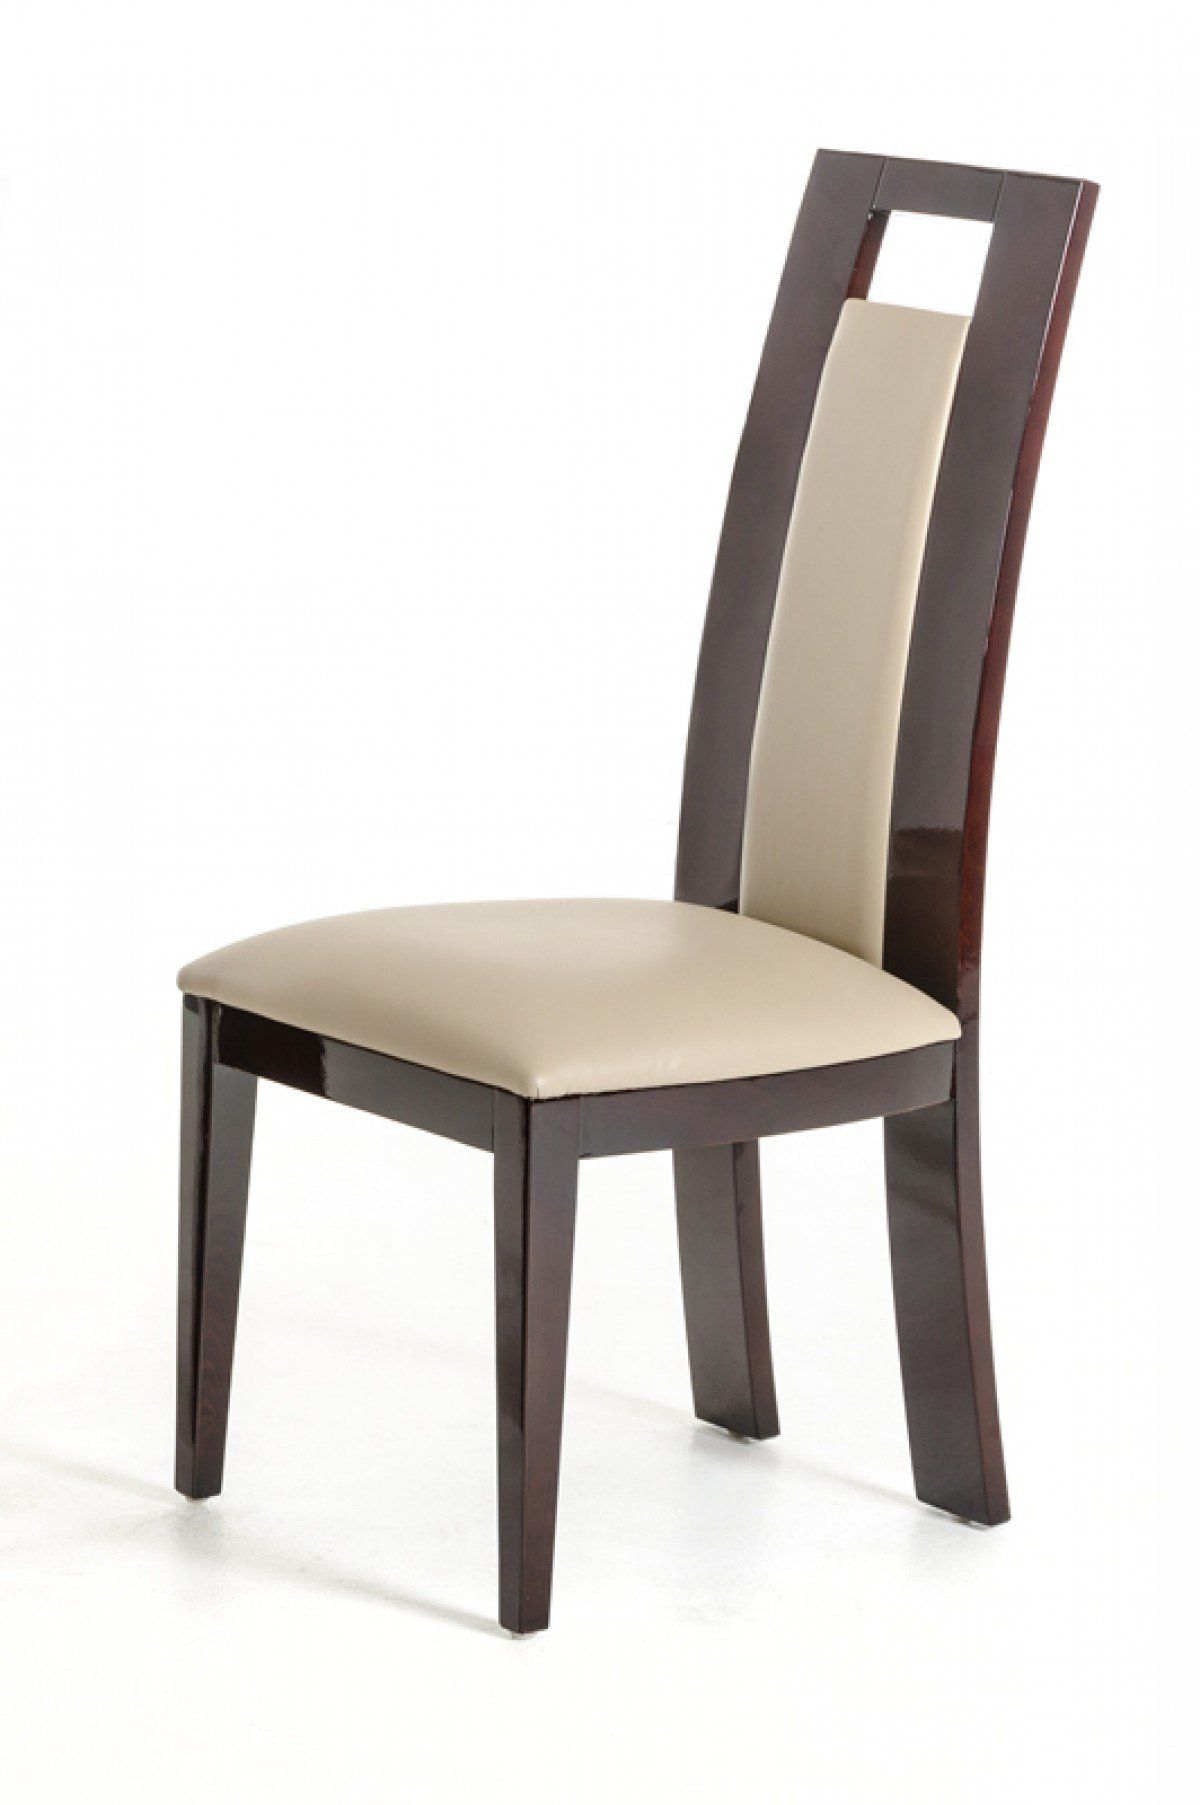 Daogelas Dining Chair (Set of 2)